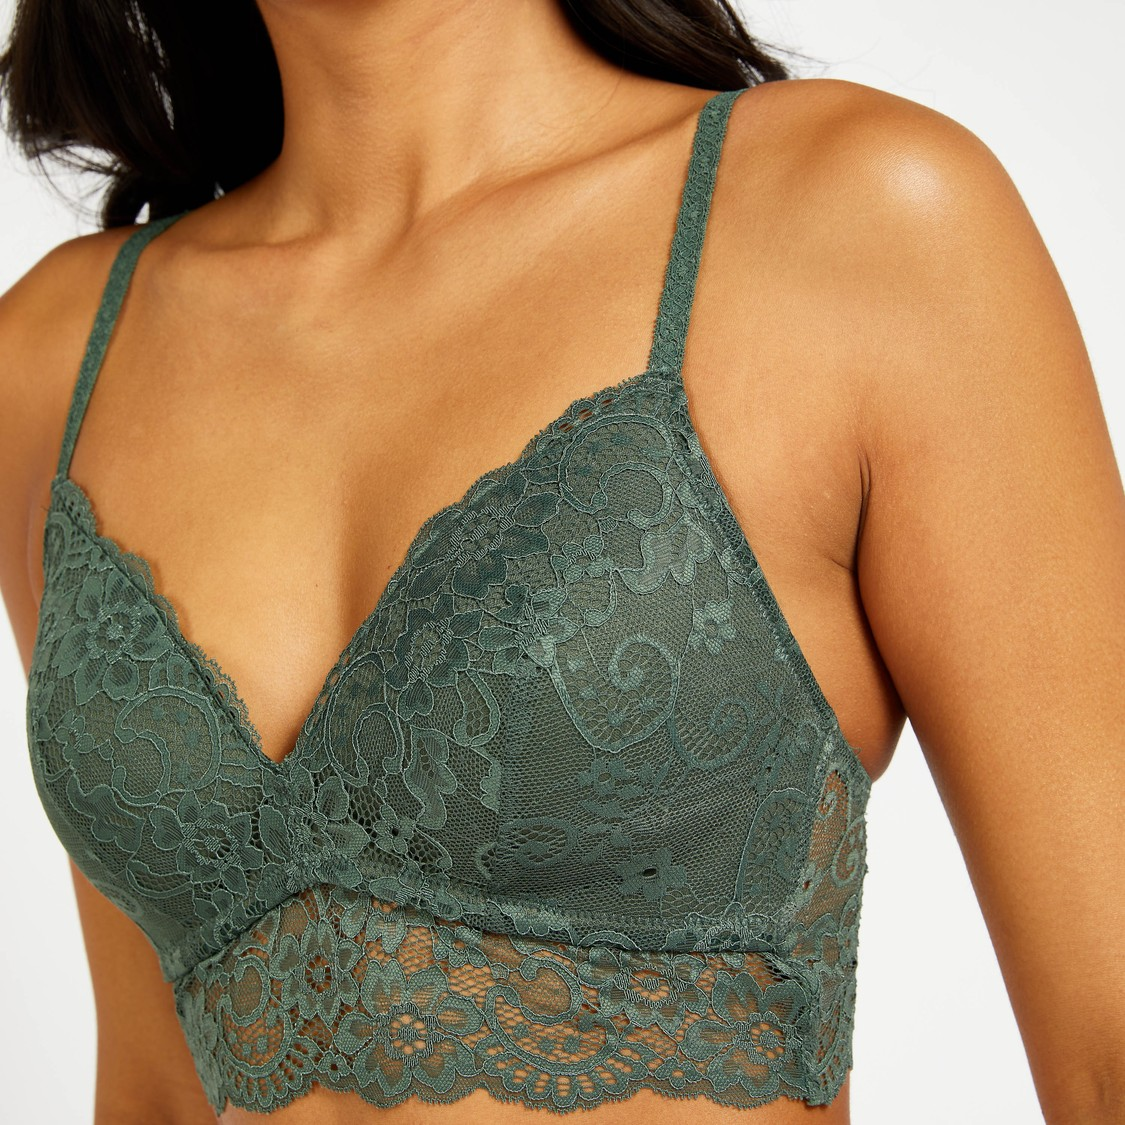 Lace Detail Padded A-Frame Bralette with Adjustable Straps